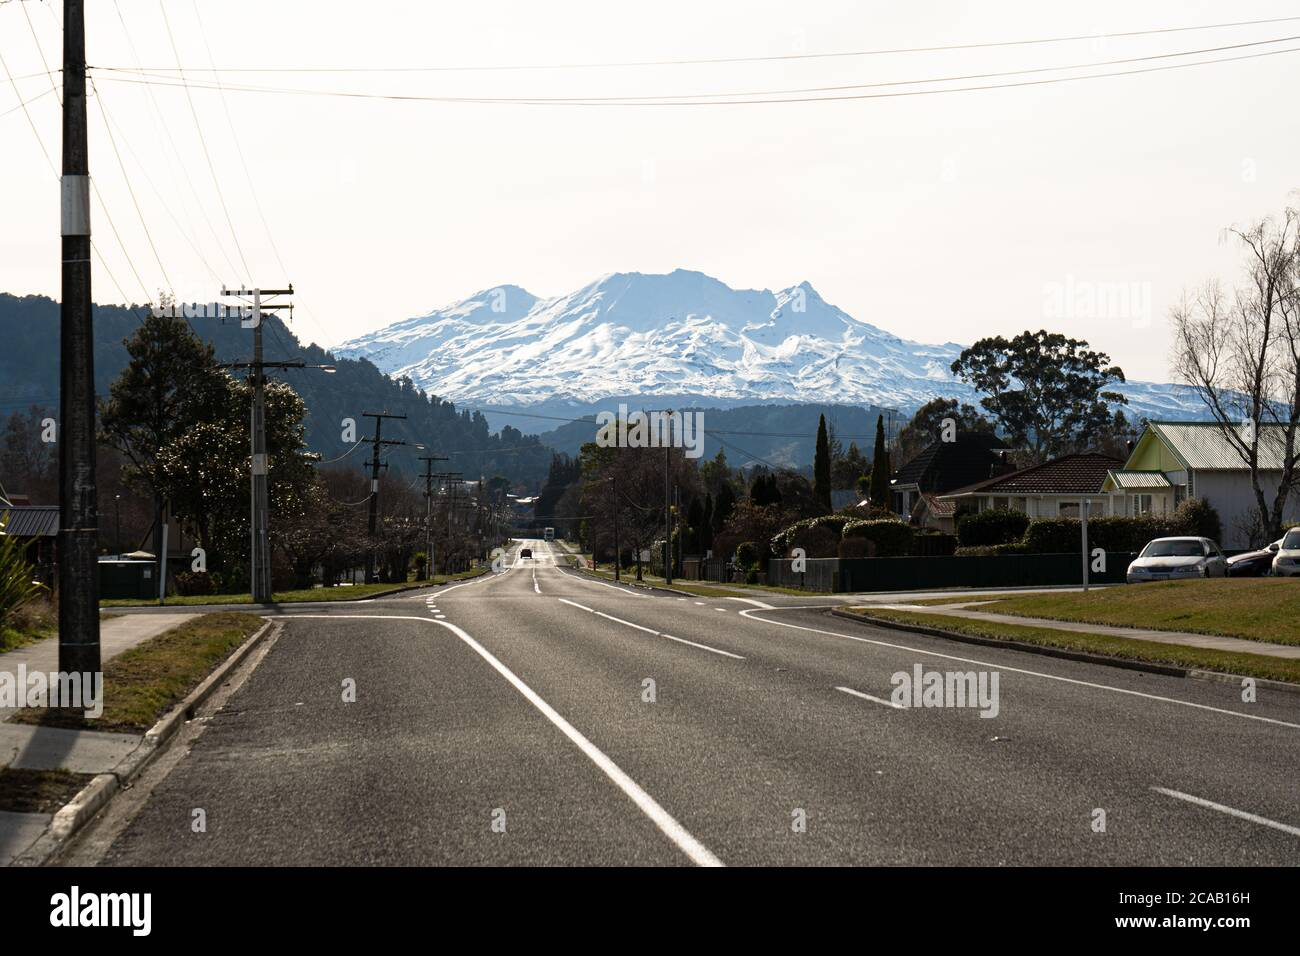 Empty street in Ohakune, New Zealand in winter, with Mt Ruapehu and the Turoa ski field in the background. Stock Photo